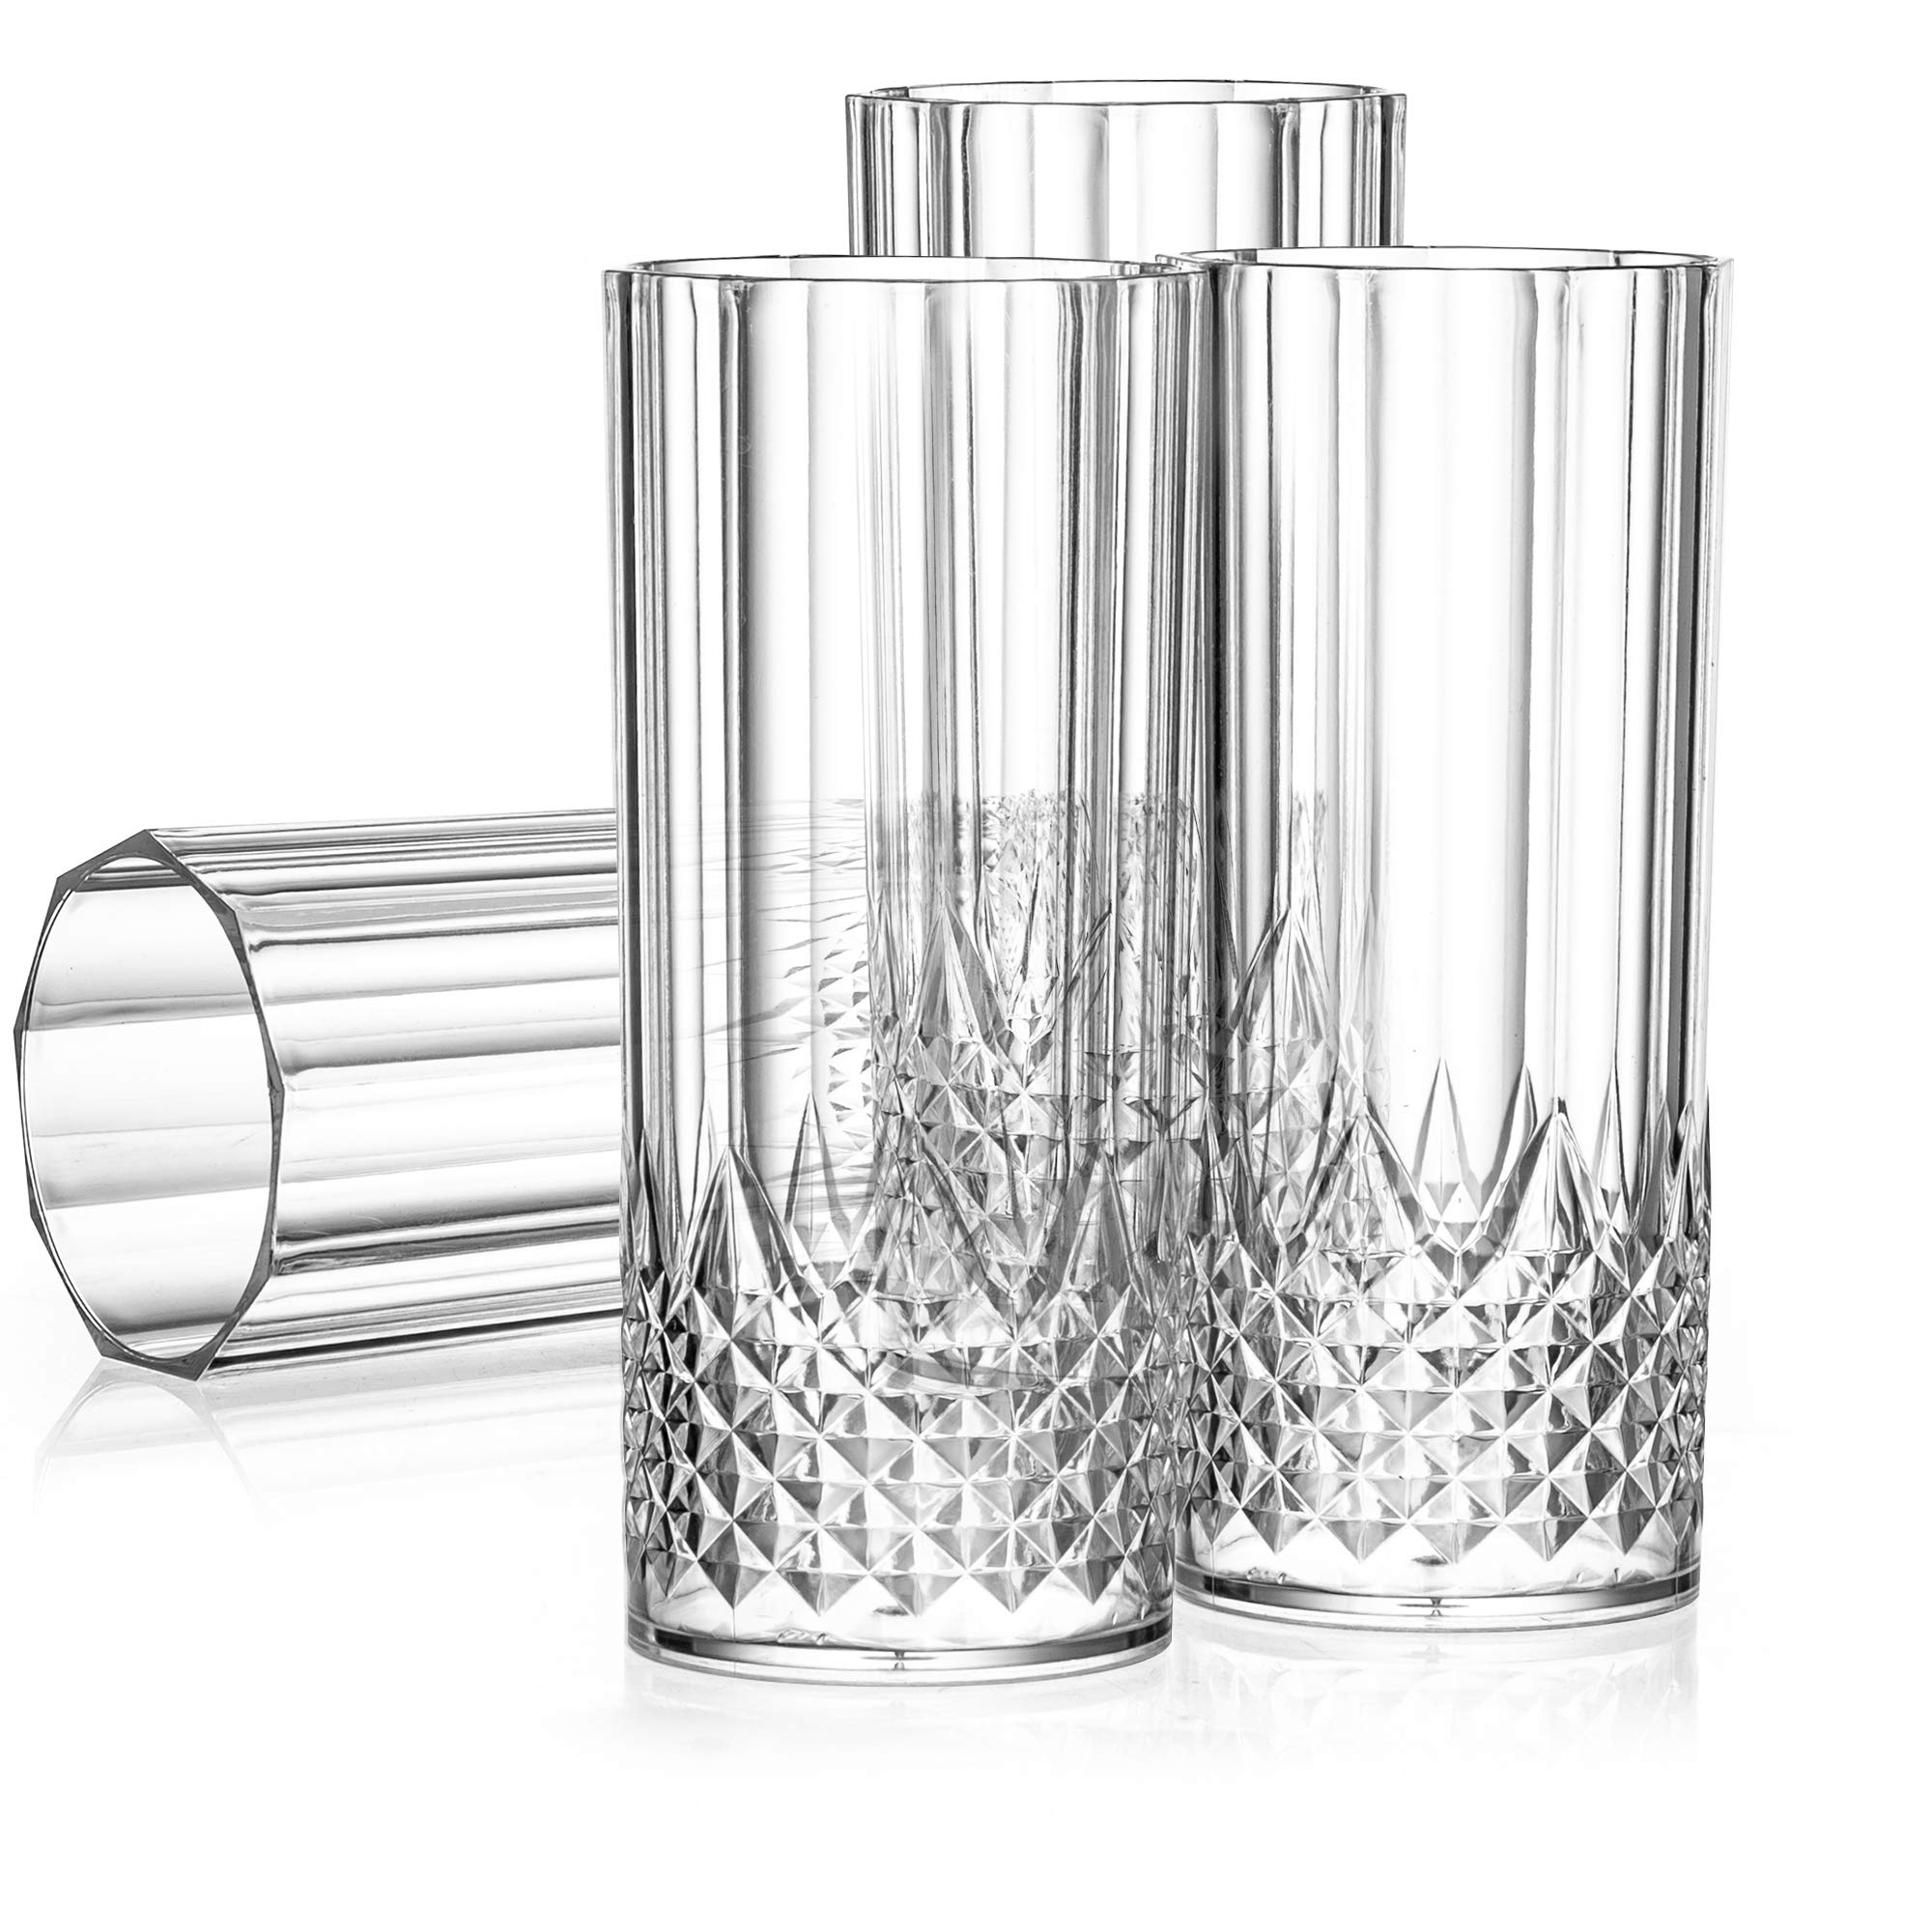 Laura Stein 4 Pack Disposable Heavy Weight Plastic Crystal Style Highball Glasses, Elegant Round Drinking Cups For Water, Beer, Mixed Drinks, Or Soda, Great For Wedding Reception Or The Everyday Party